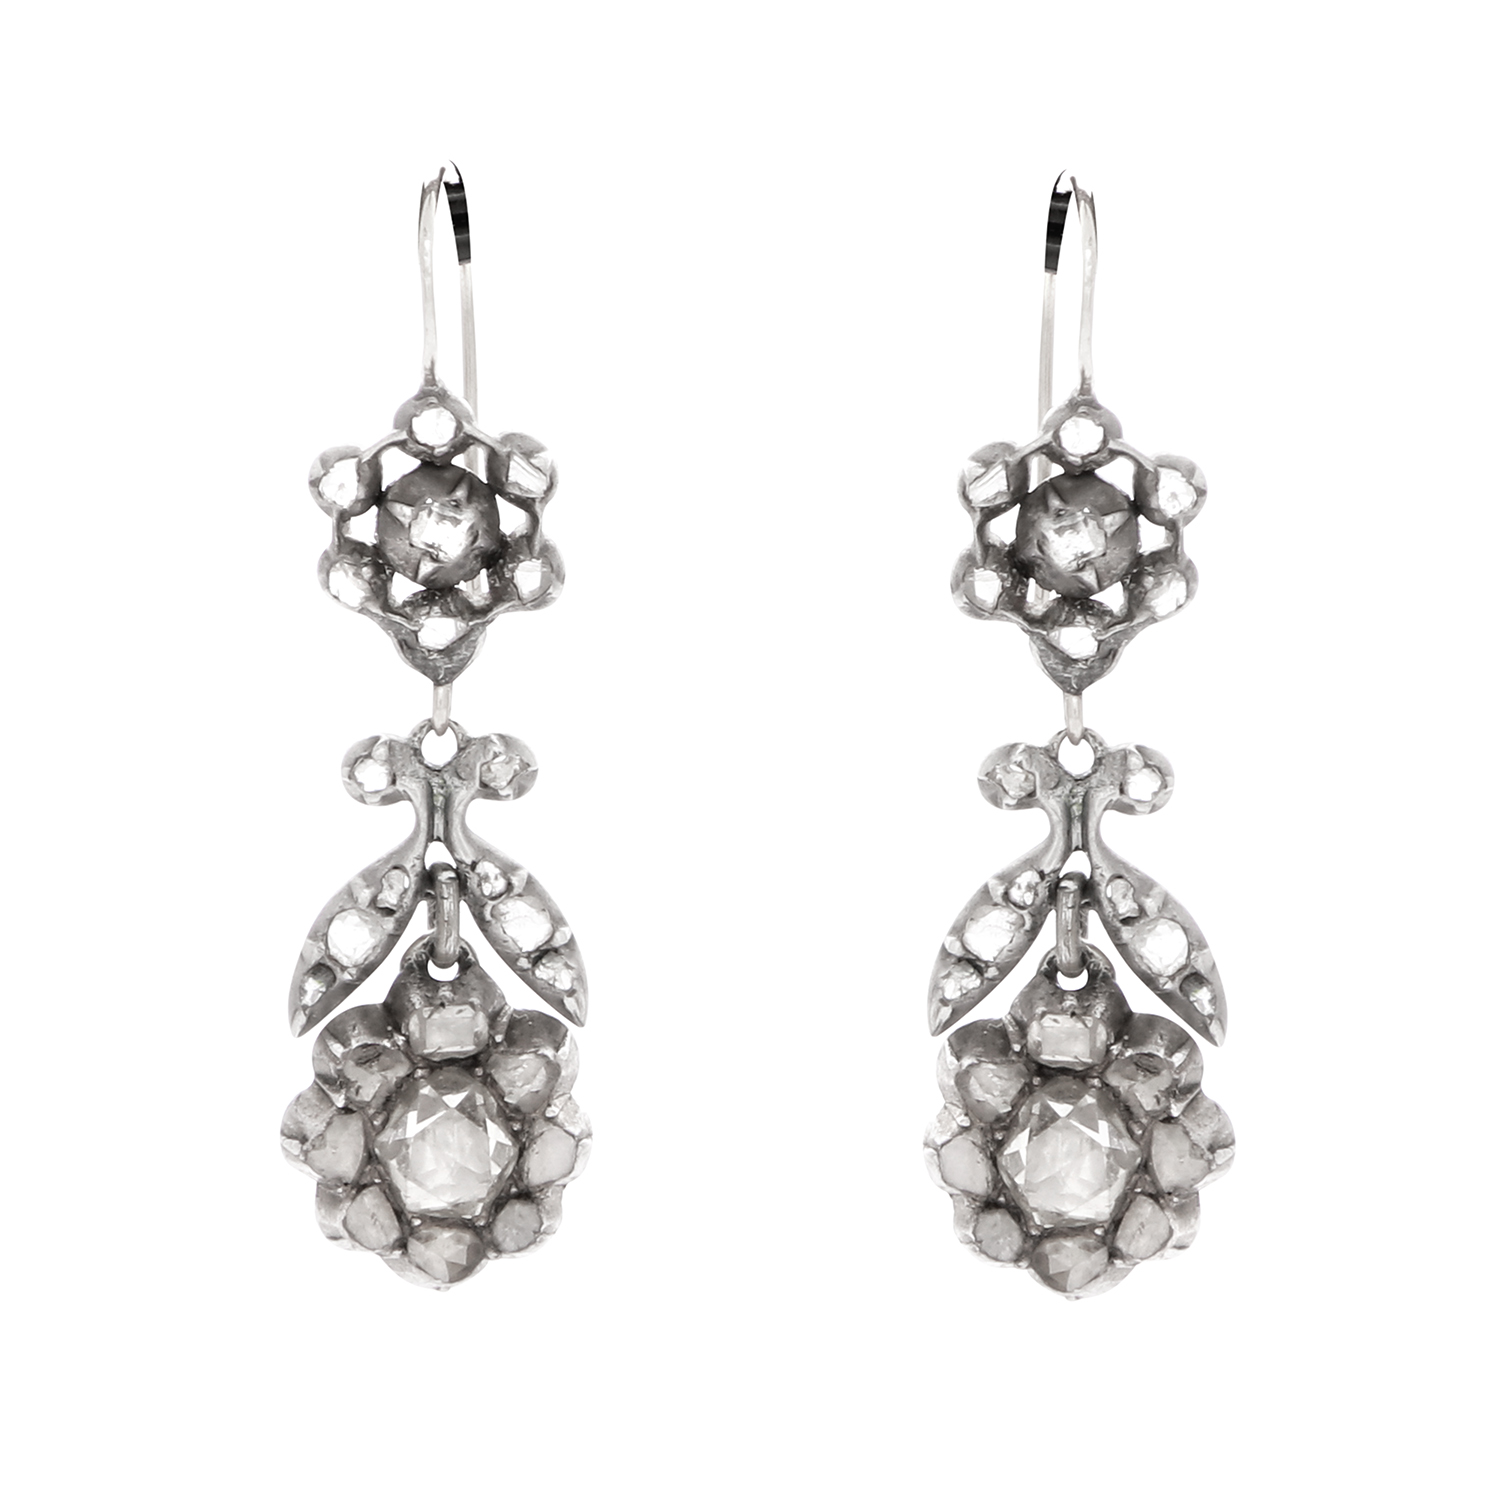 Los 39 - A PAIR OF DIAMOND DROP EARRINGS, EARLY 19TH CENTURY in yellow gold and silver, each drop set with